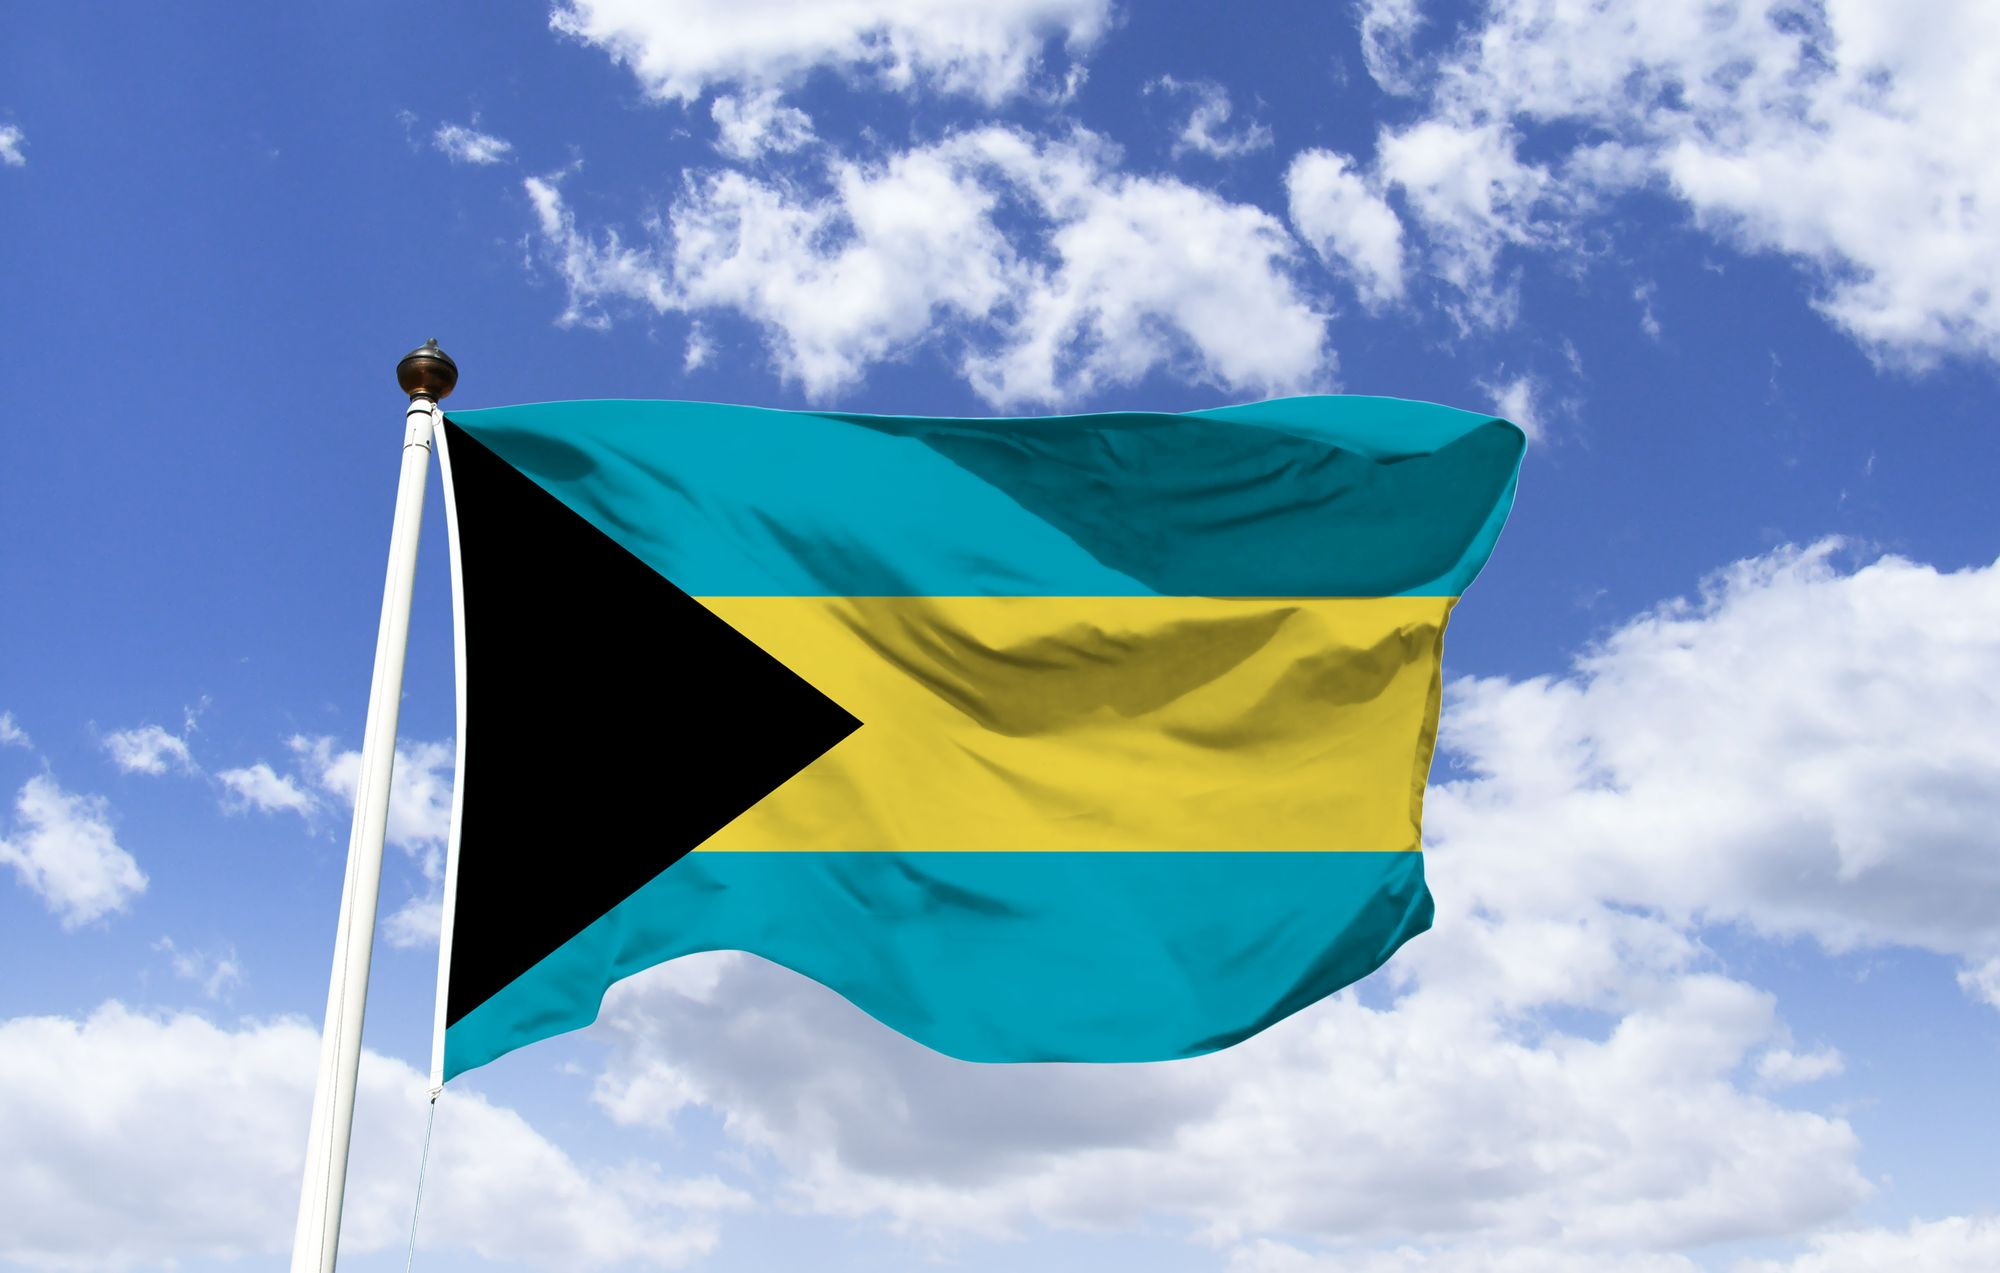 How to Support the Bahamas After Hurricane Dorian Devastation